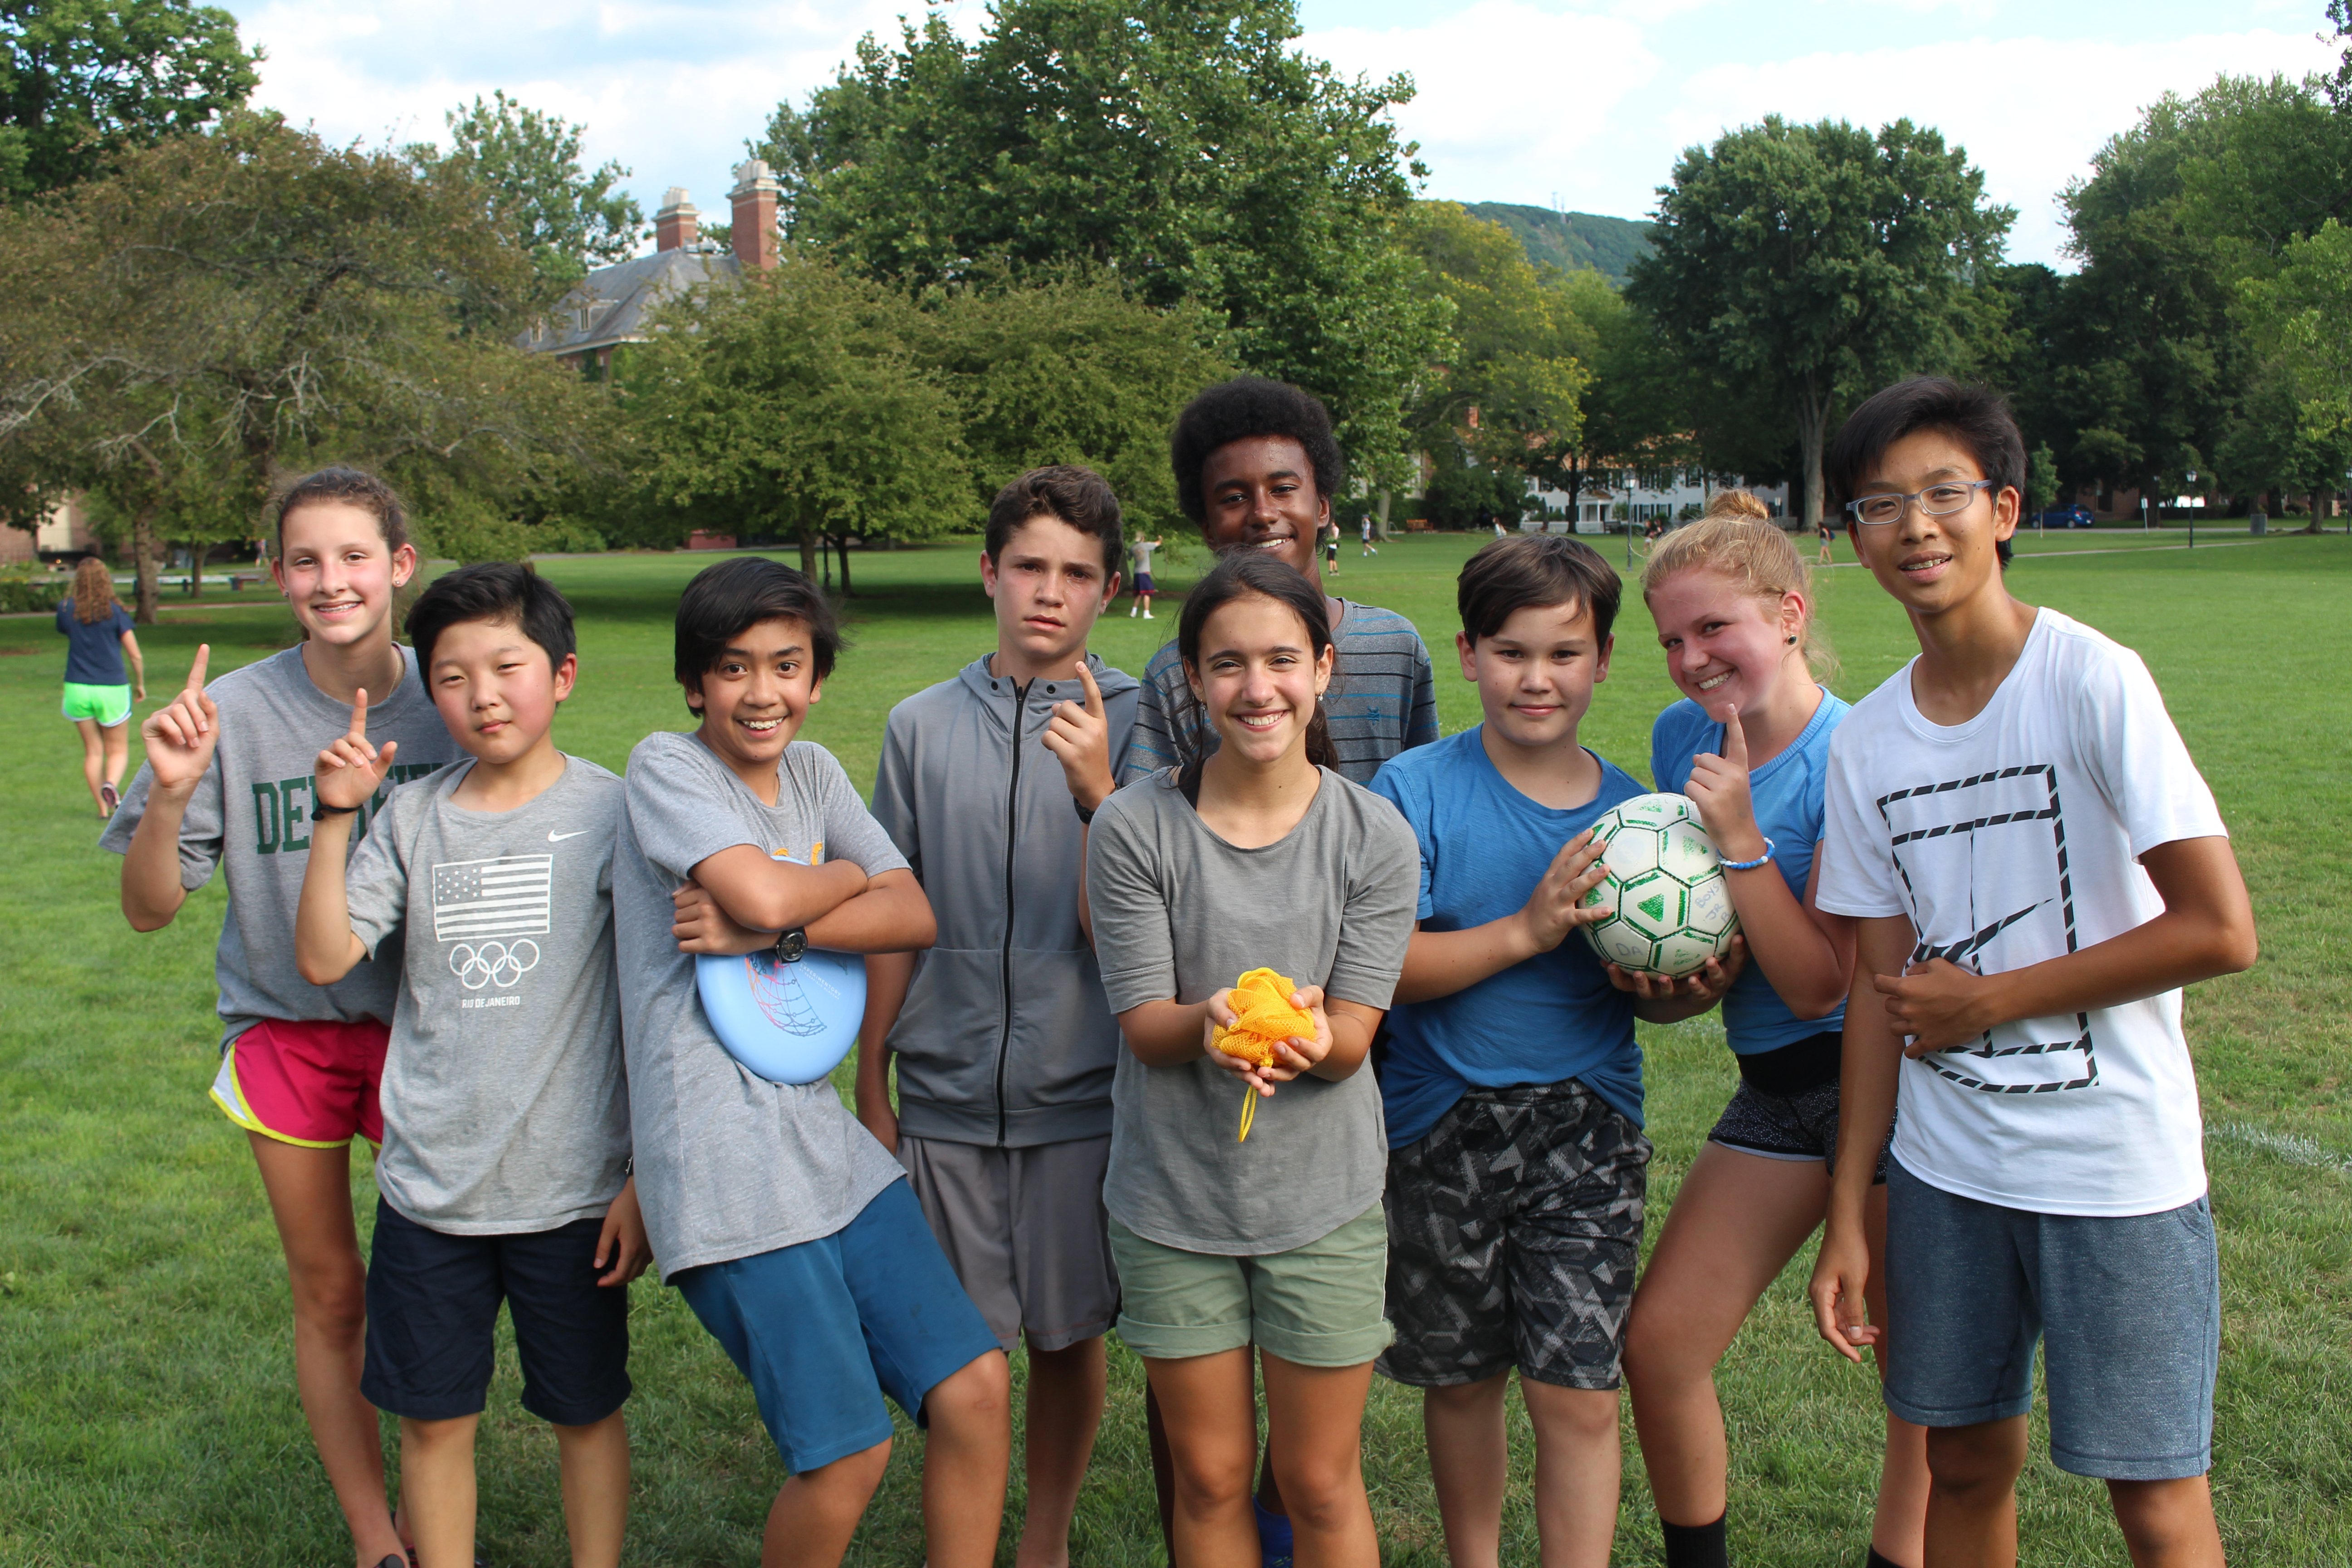 Summer Program - STEM | The Experimentory at Deerfield Academy for Middle School Students